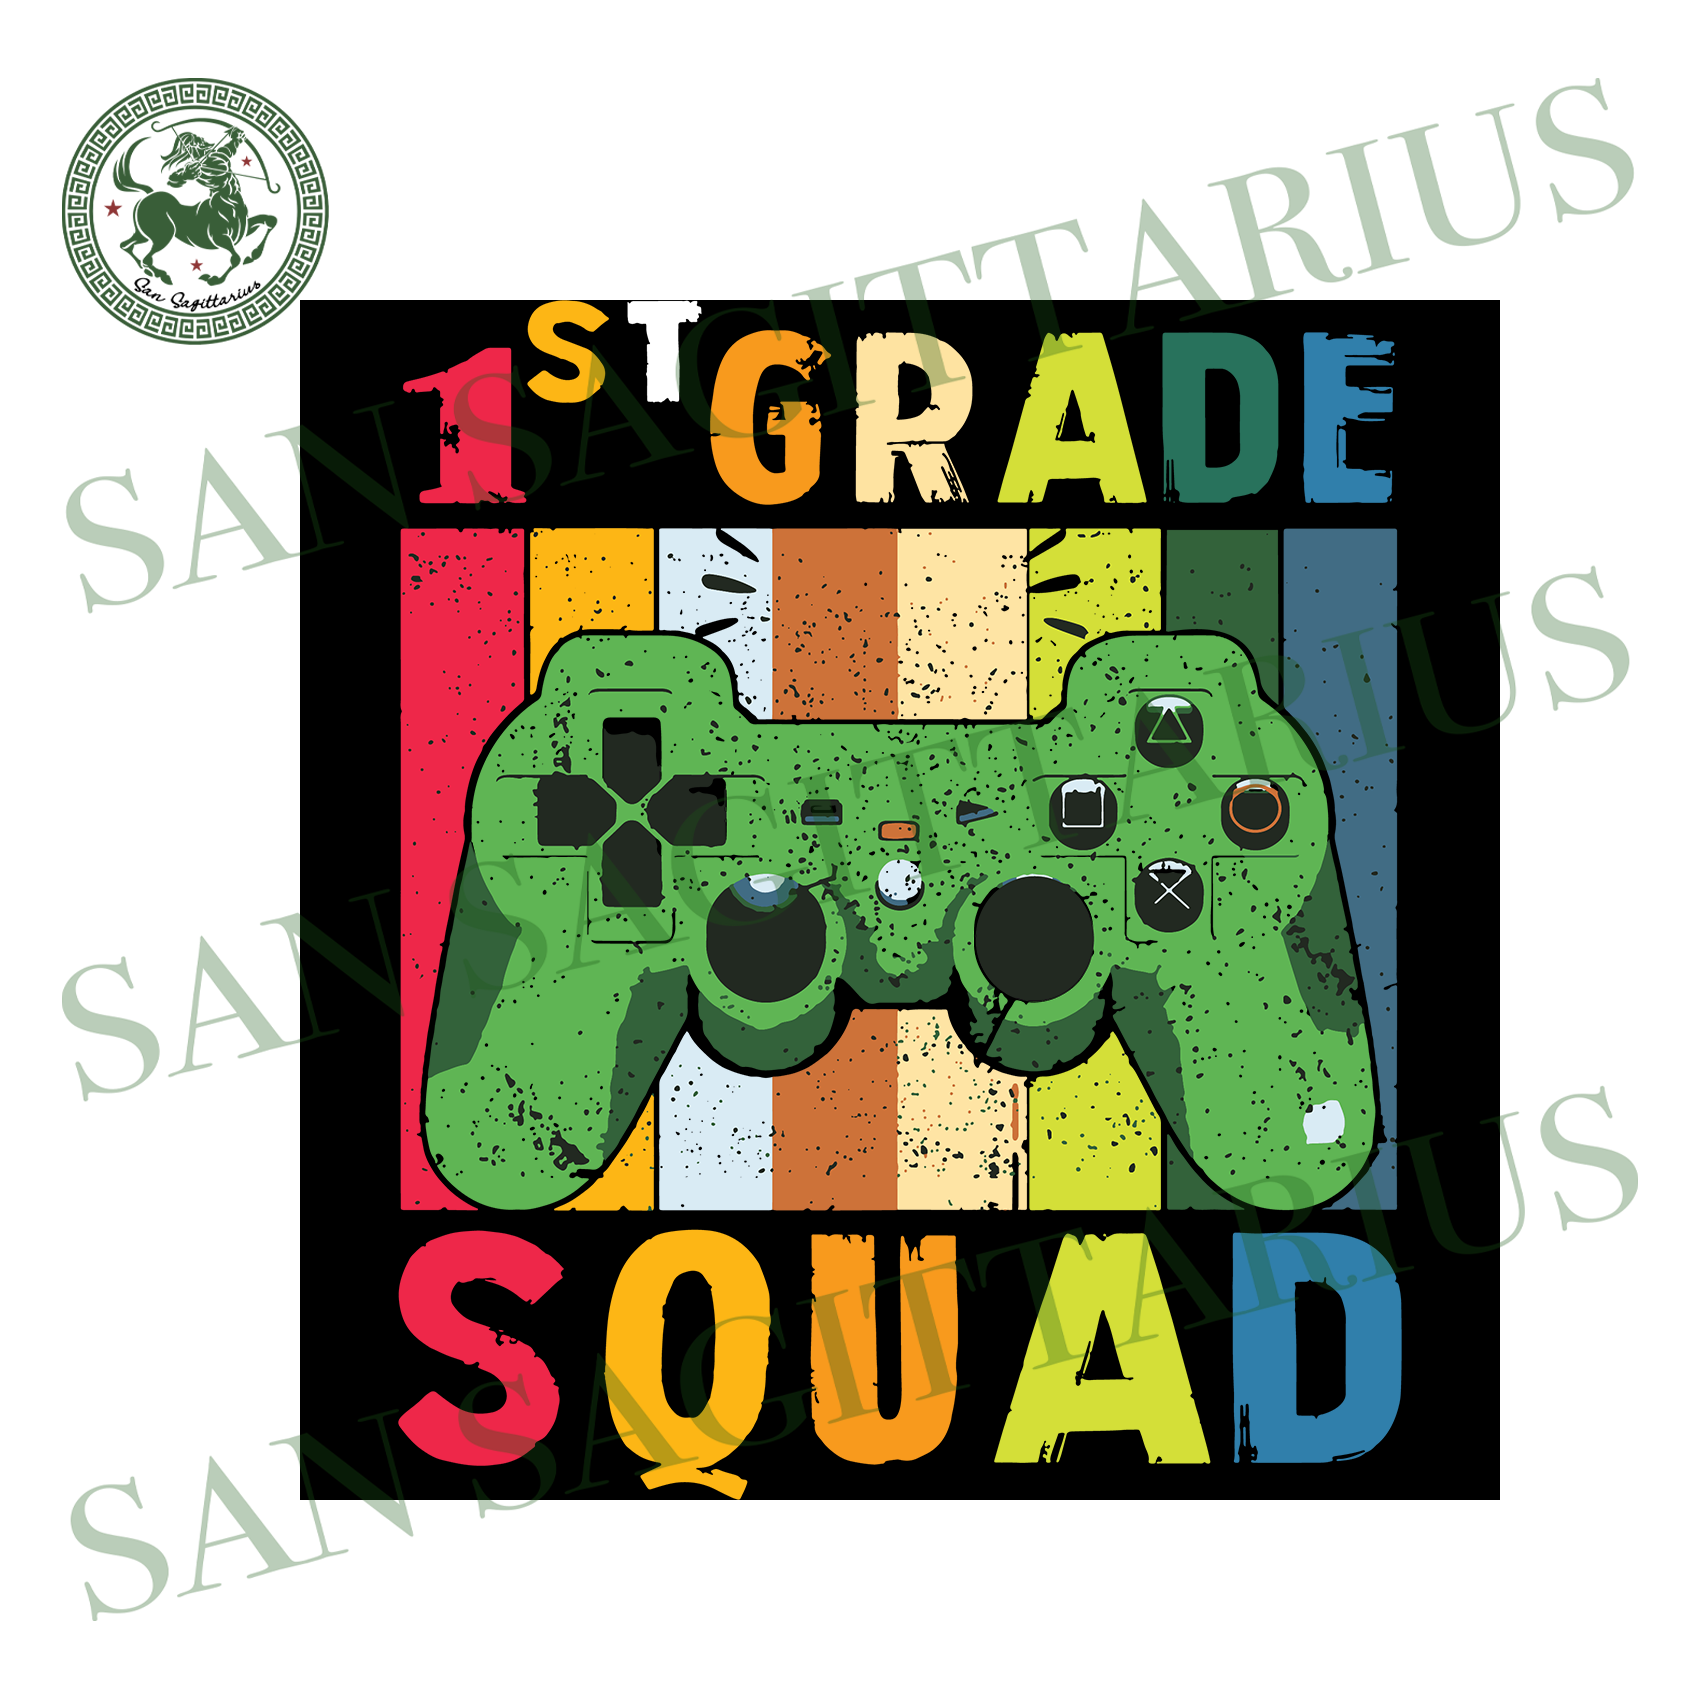 1st Grade Squad,Game Svg, Gamer Shirt, Gift For Gamer Lover, 1st Grade, 1st Grade Svg,First Day Of School, School Svg,Back To School Shirt, Back To School Svg, Kinder Svg, Kindergarten Shirt,